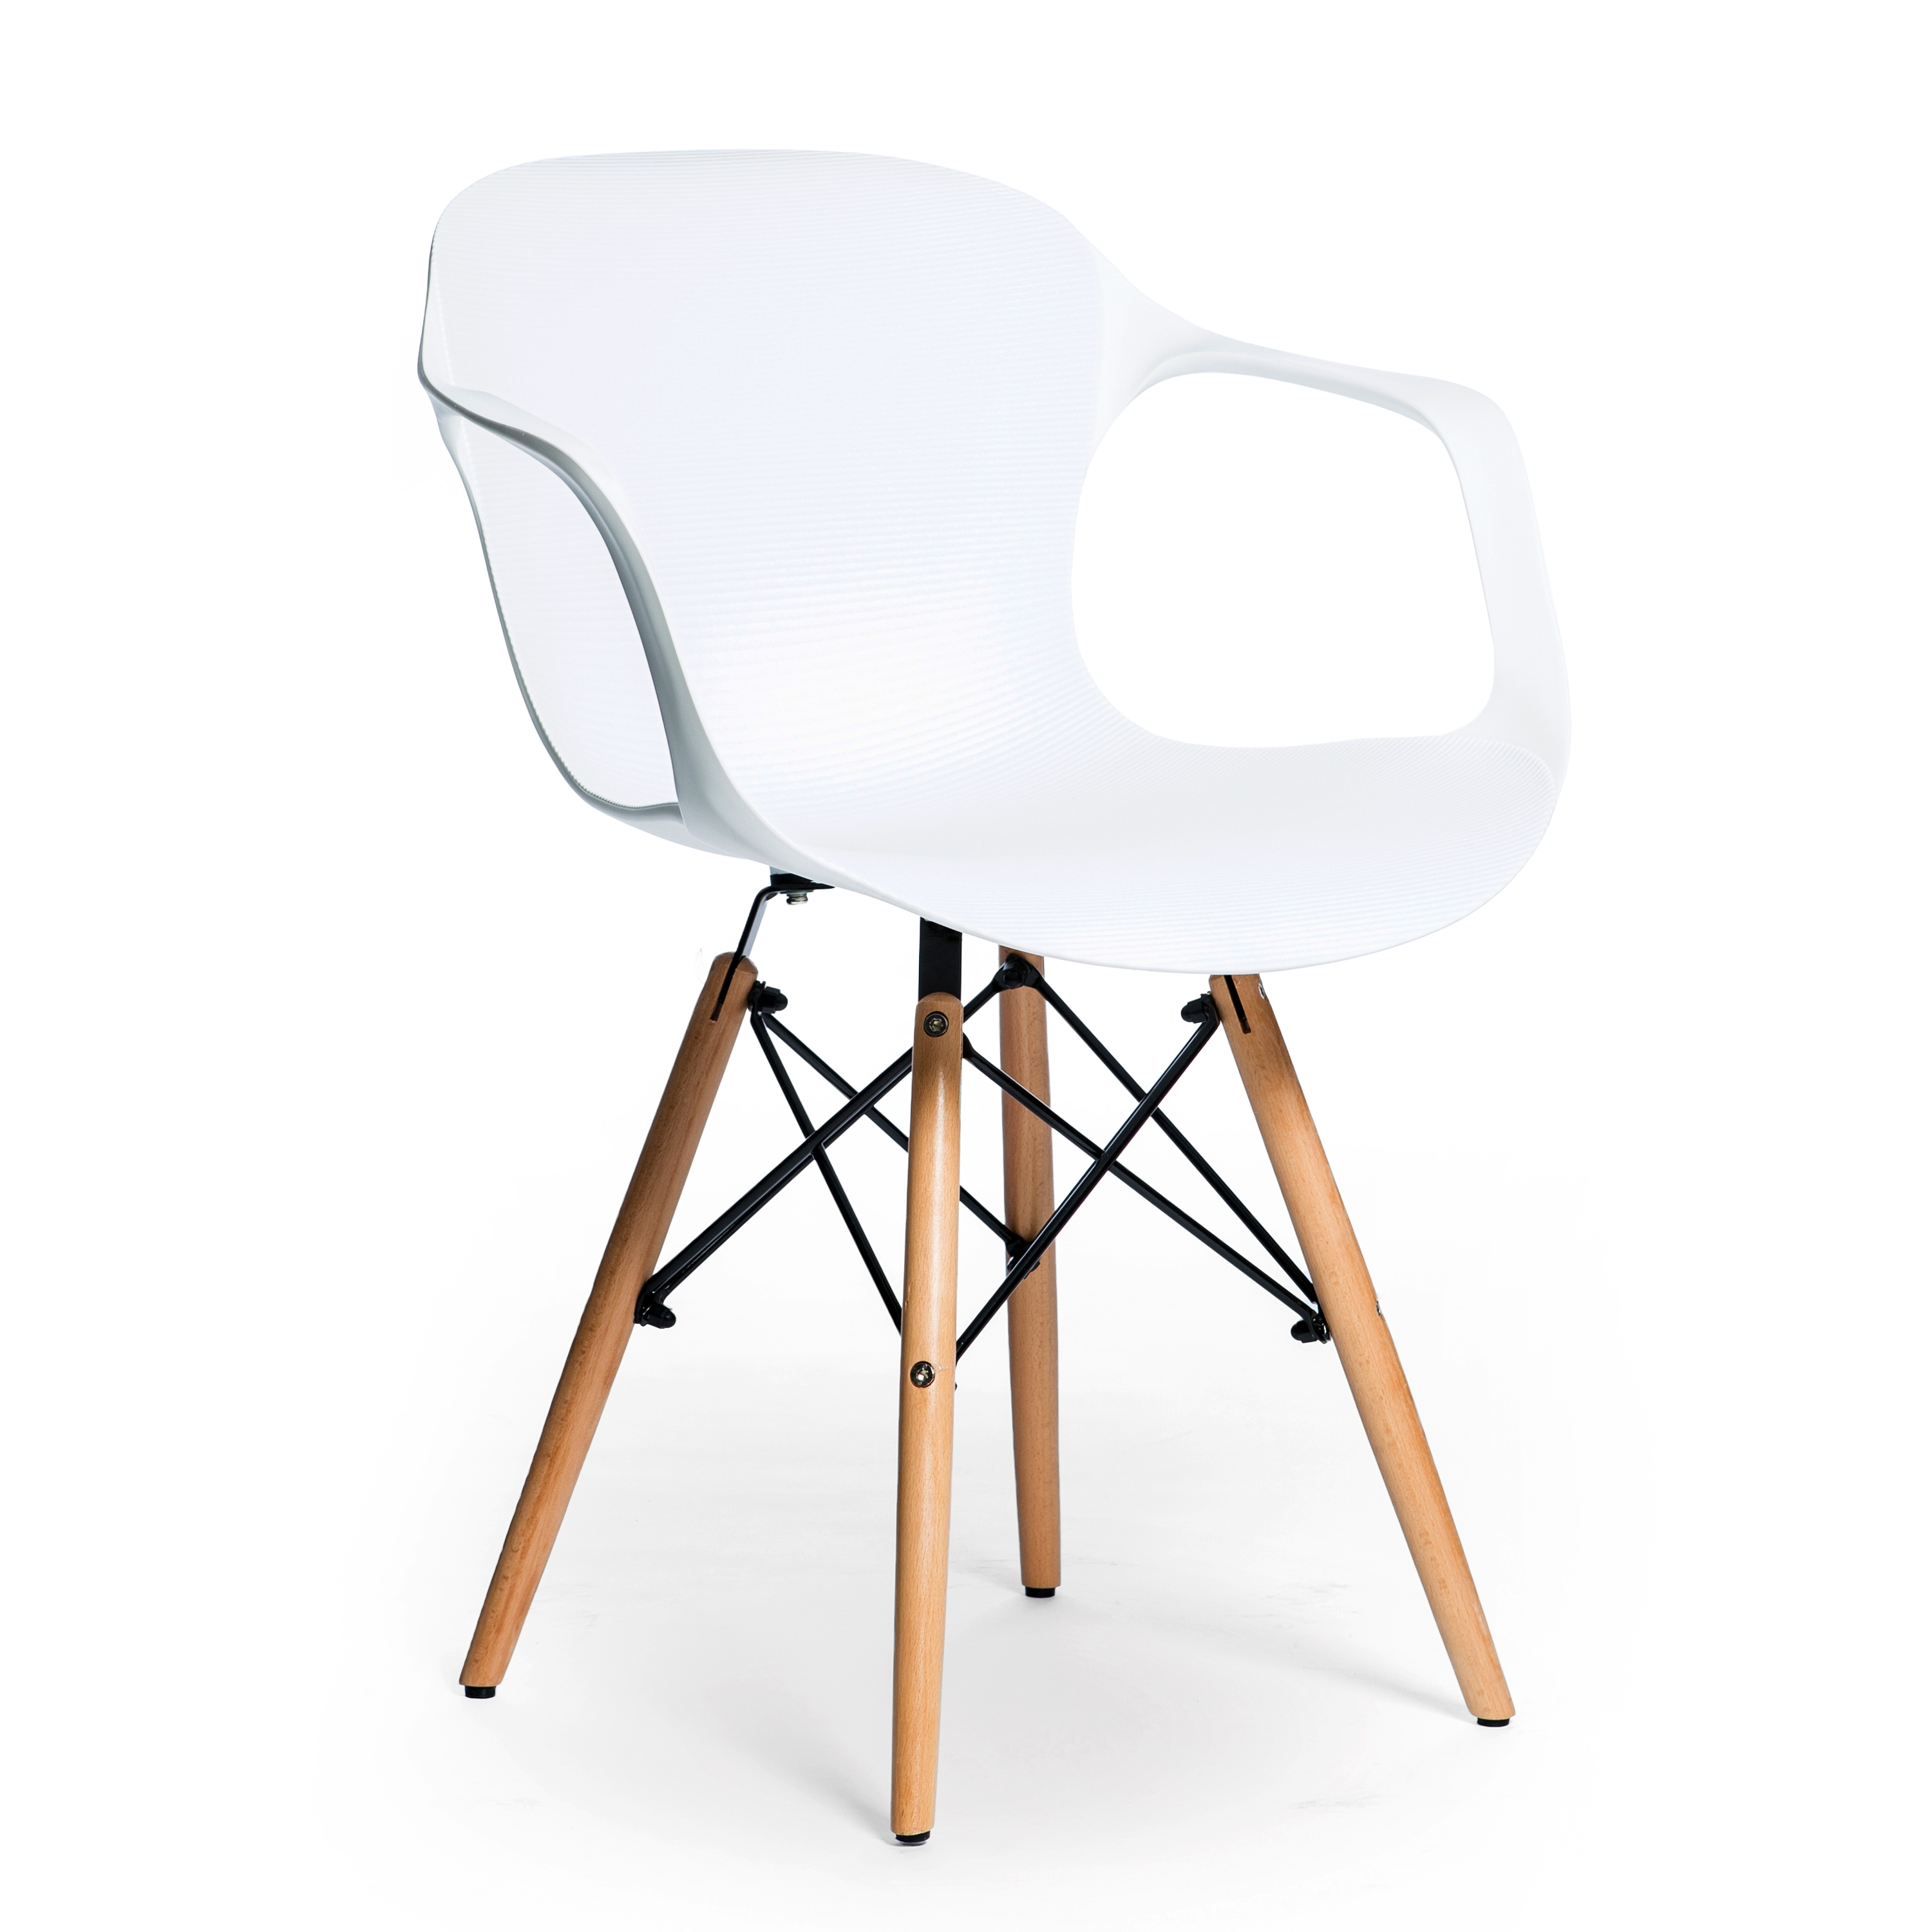 Sillas Tower Silla Tower Wood Xl New Edition Sillas Diseño Furnmod